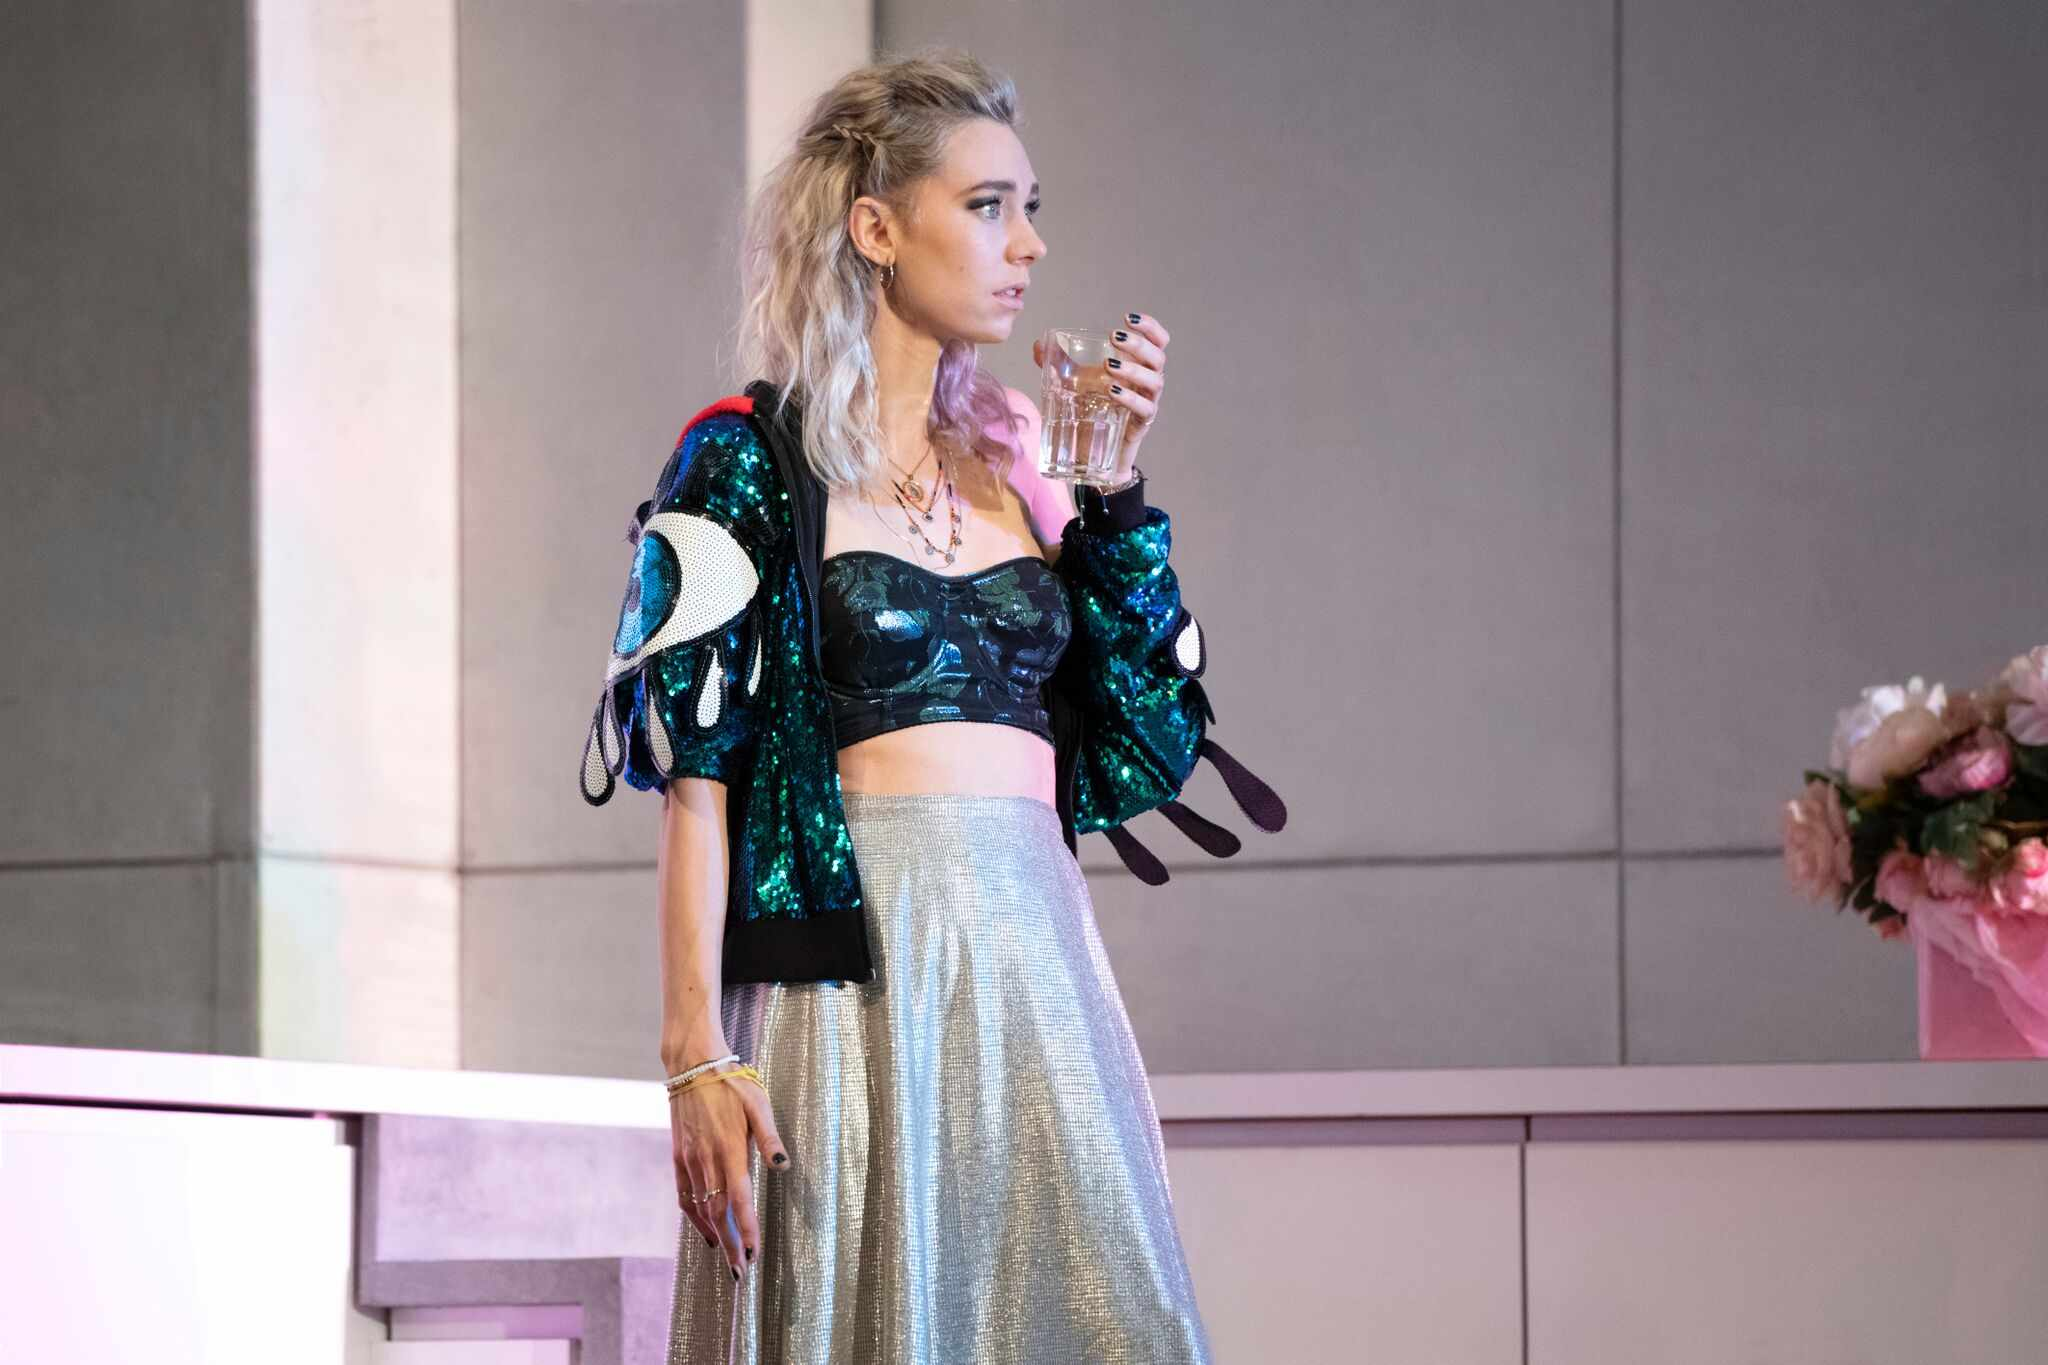 Vanessa Kirby as Julie (photos: Richard H Smith)